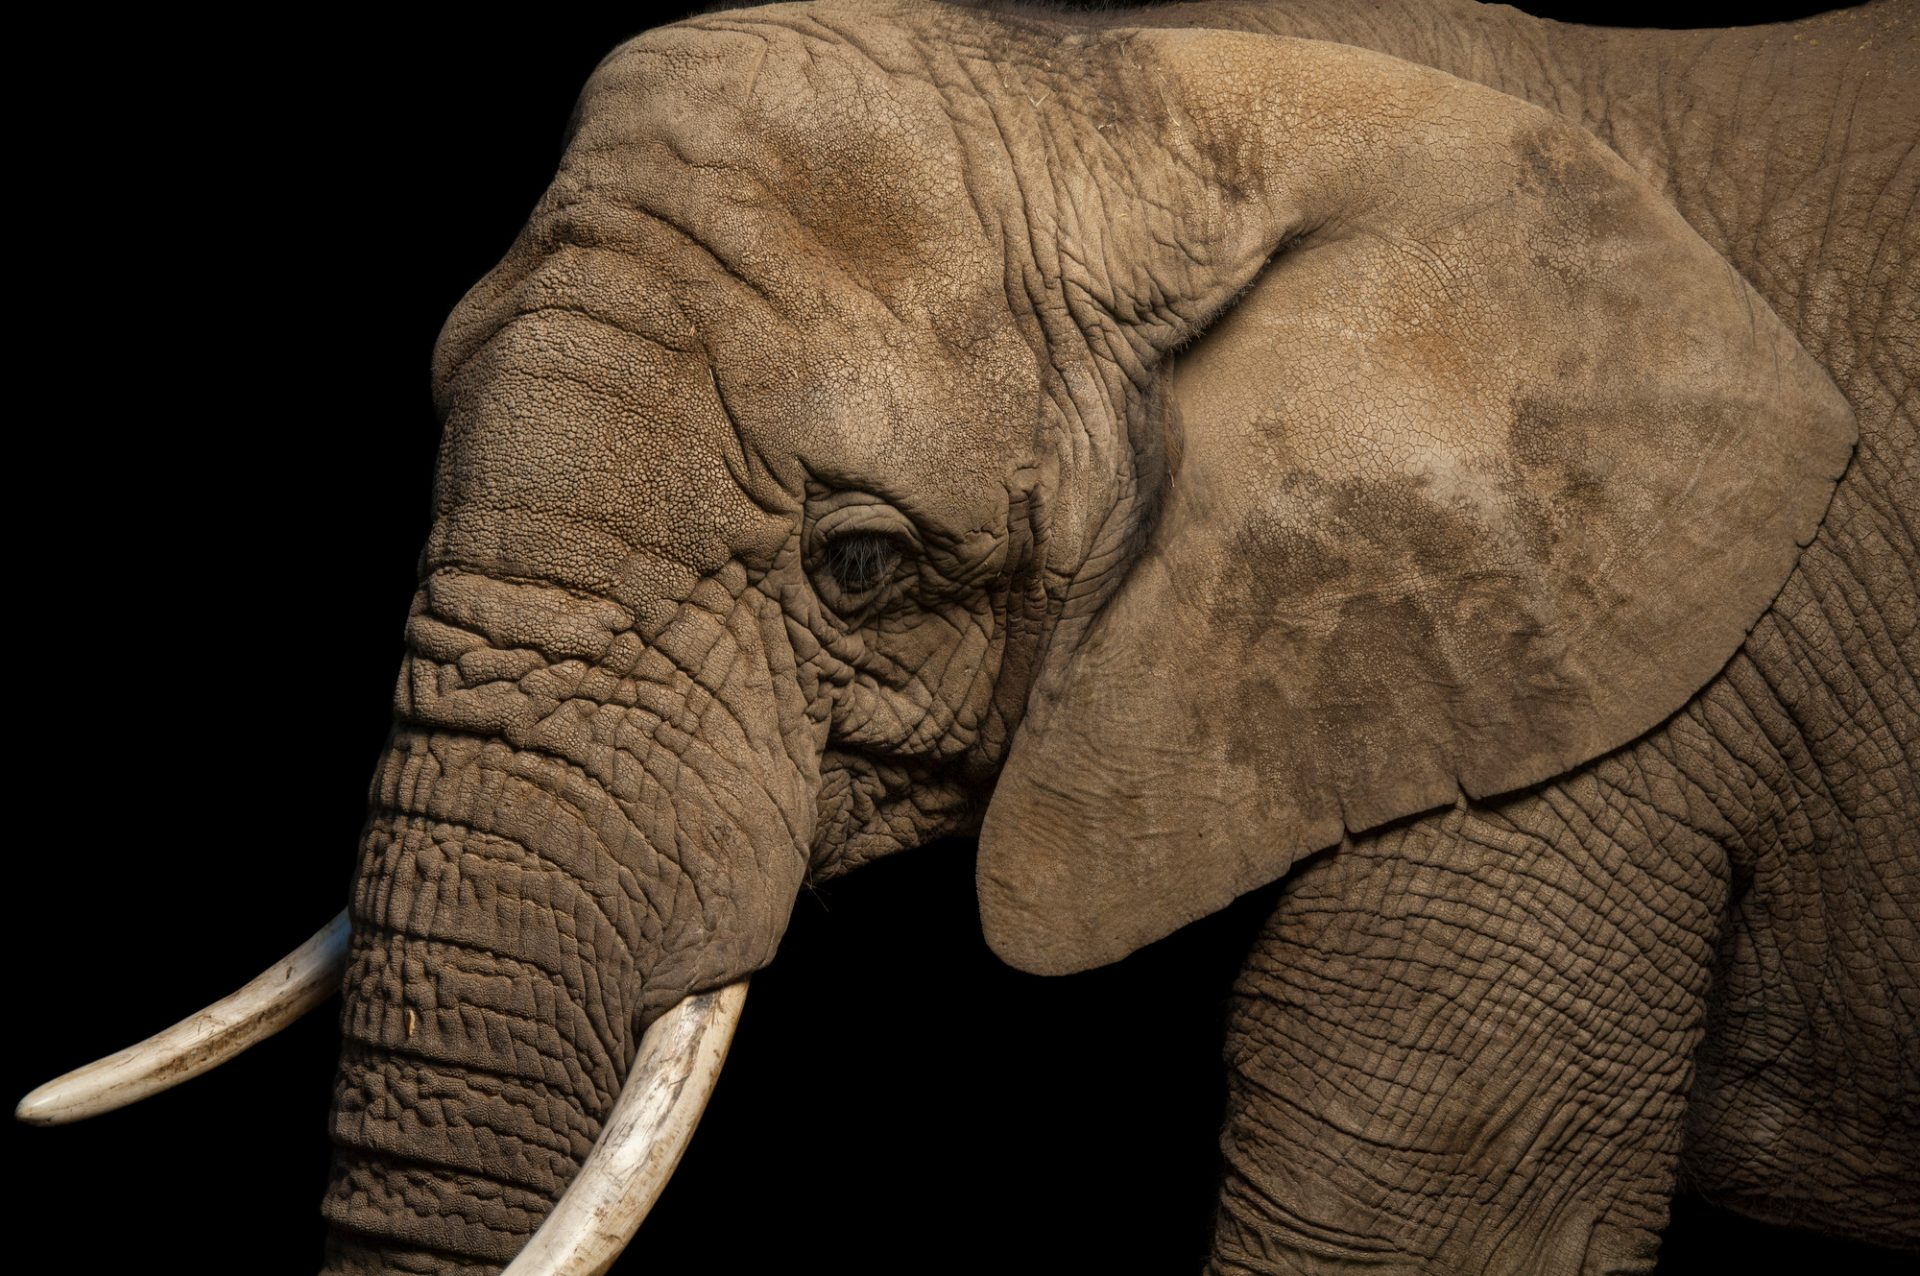 A female, vulnerable African elephant (Loxodonta africana) at the Cheyenne Mountain Zoo.